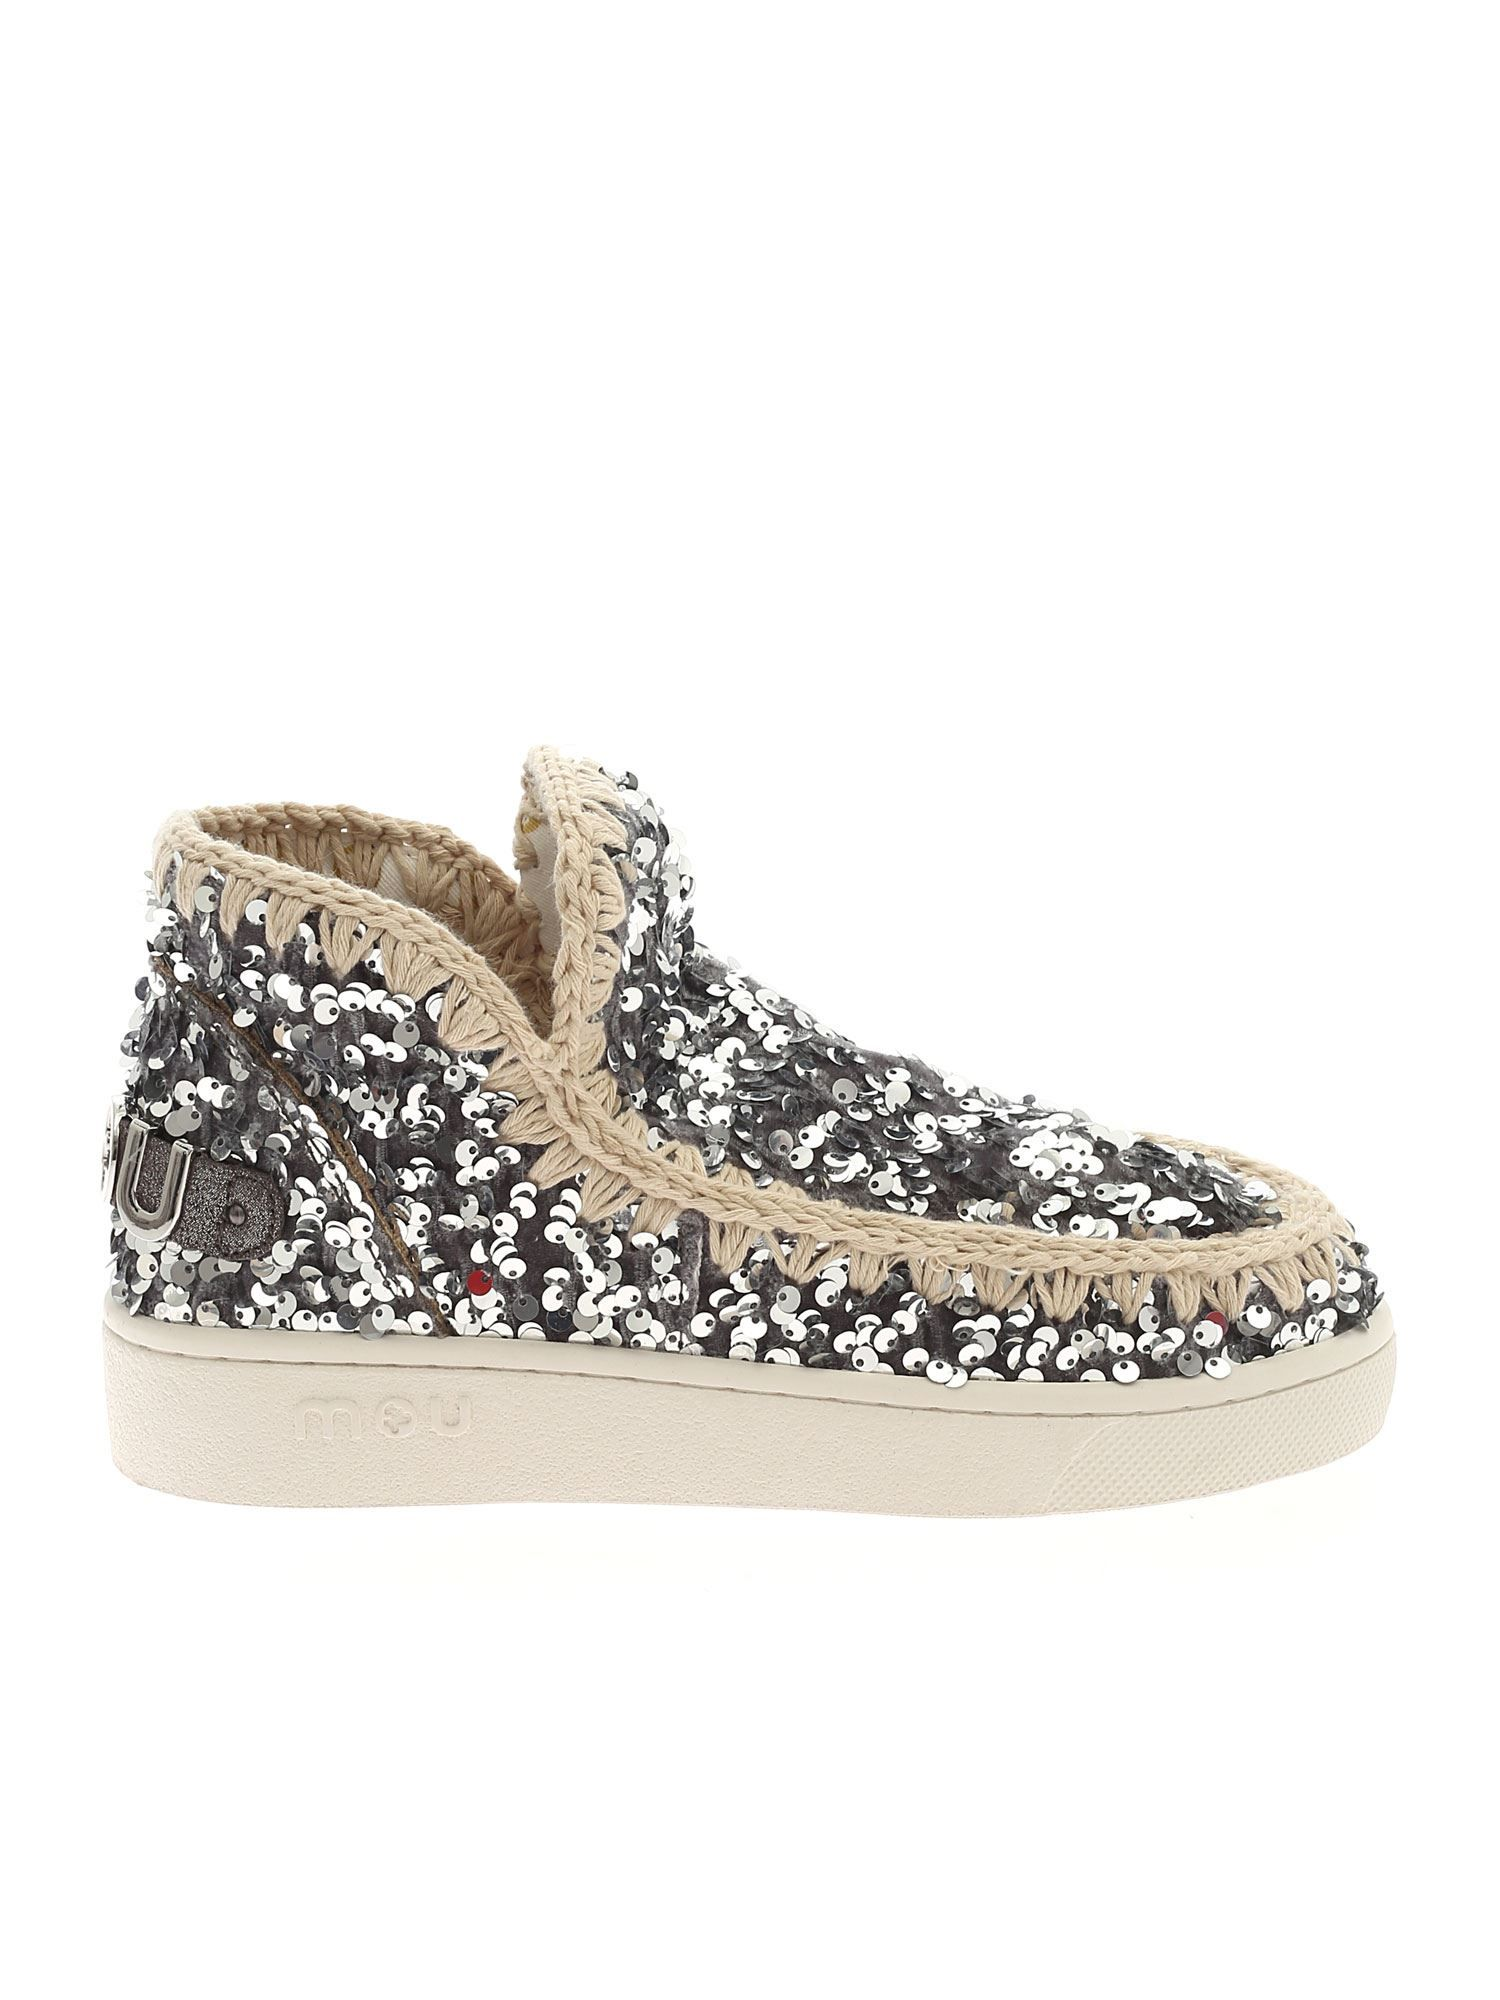 Mou Women's Silver Other Materials Ankle Boots